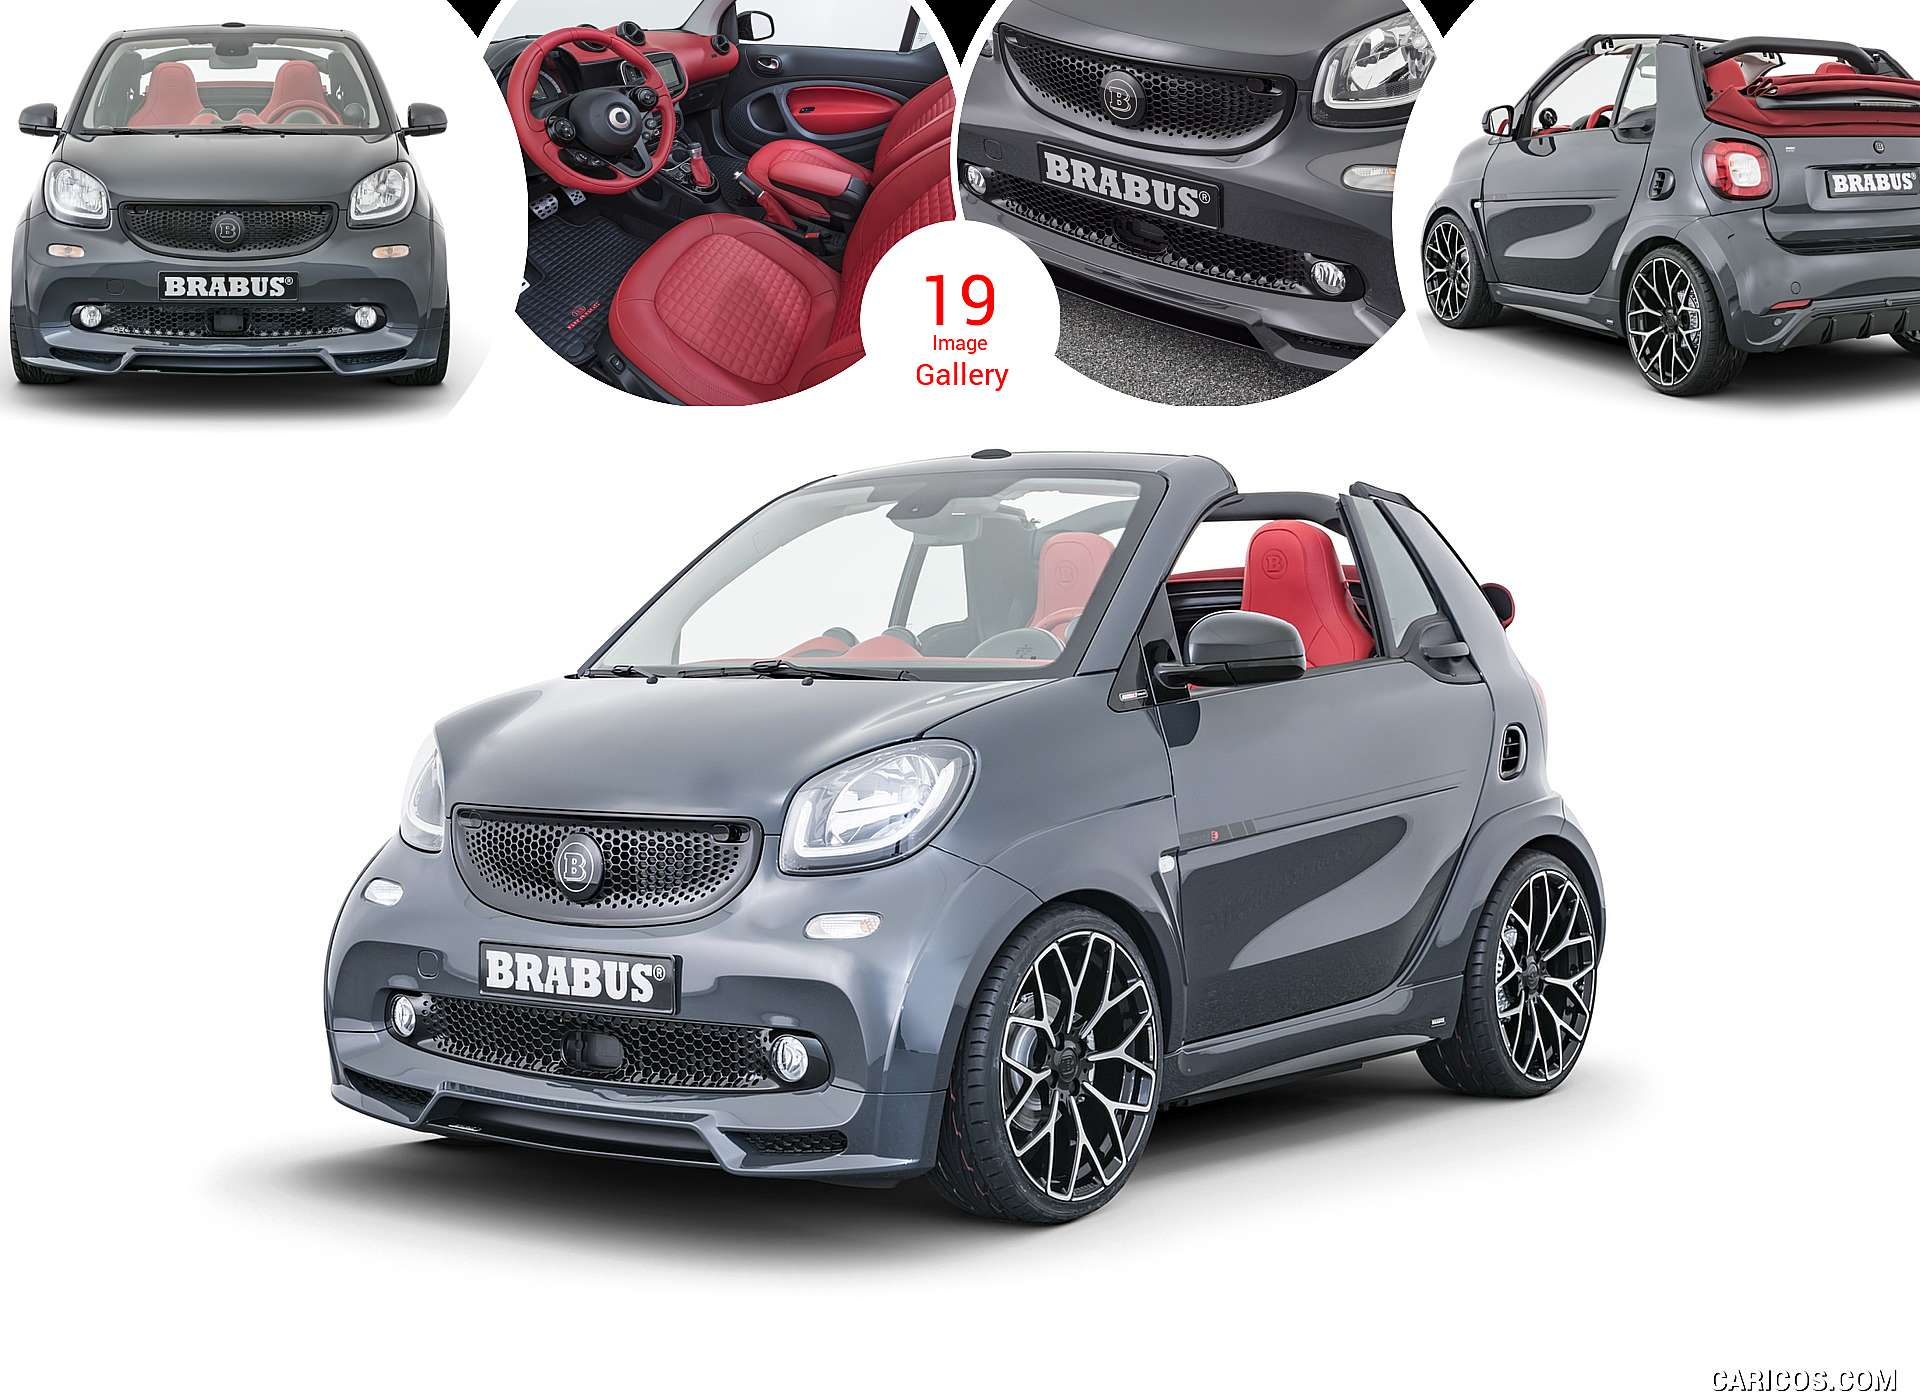 2019 BRABUS Ultimate E Shadow Edition 1 of 28 based on smart EQ fortwo cabrio